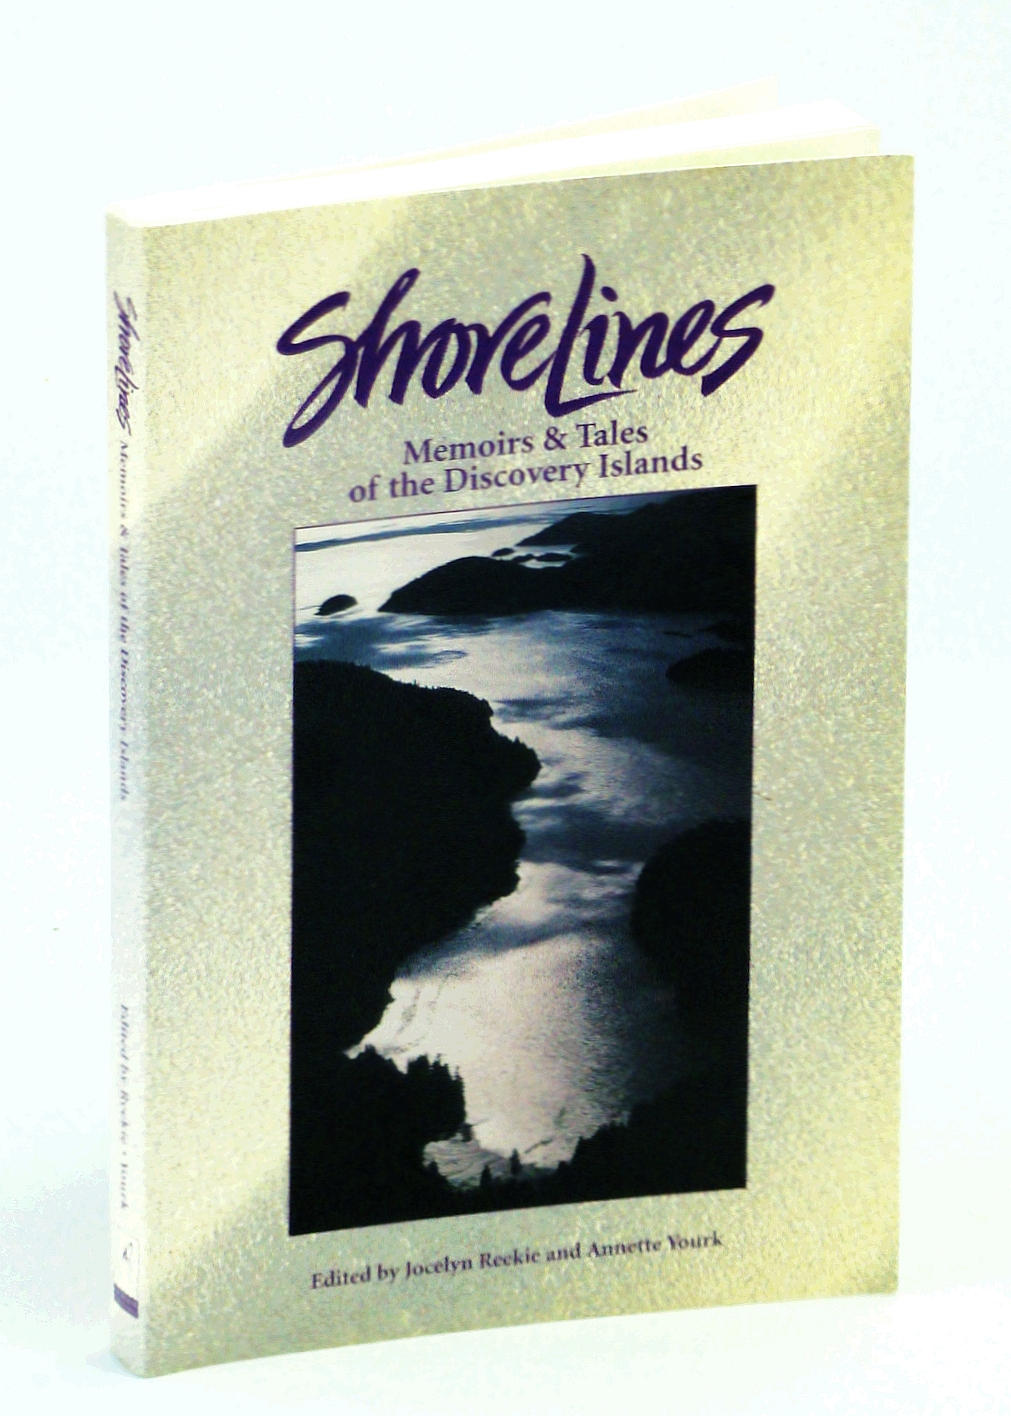 Image for Shorelines, Memoirs & Tales of the Discovery Islands